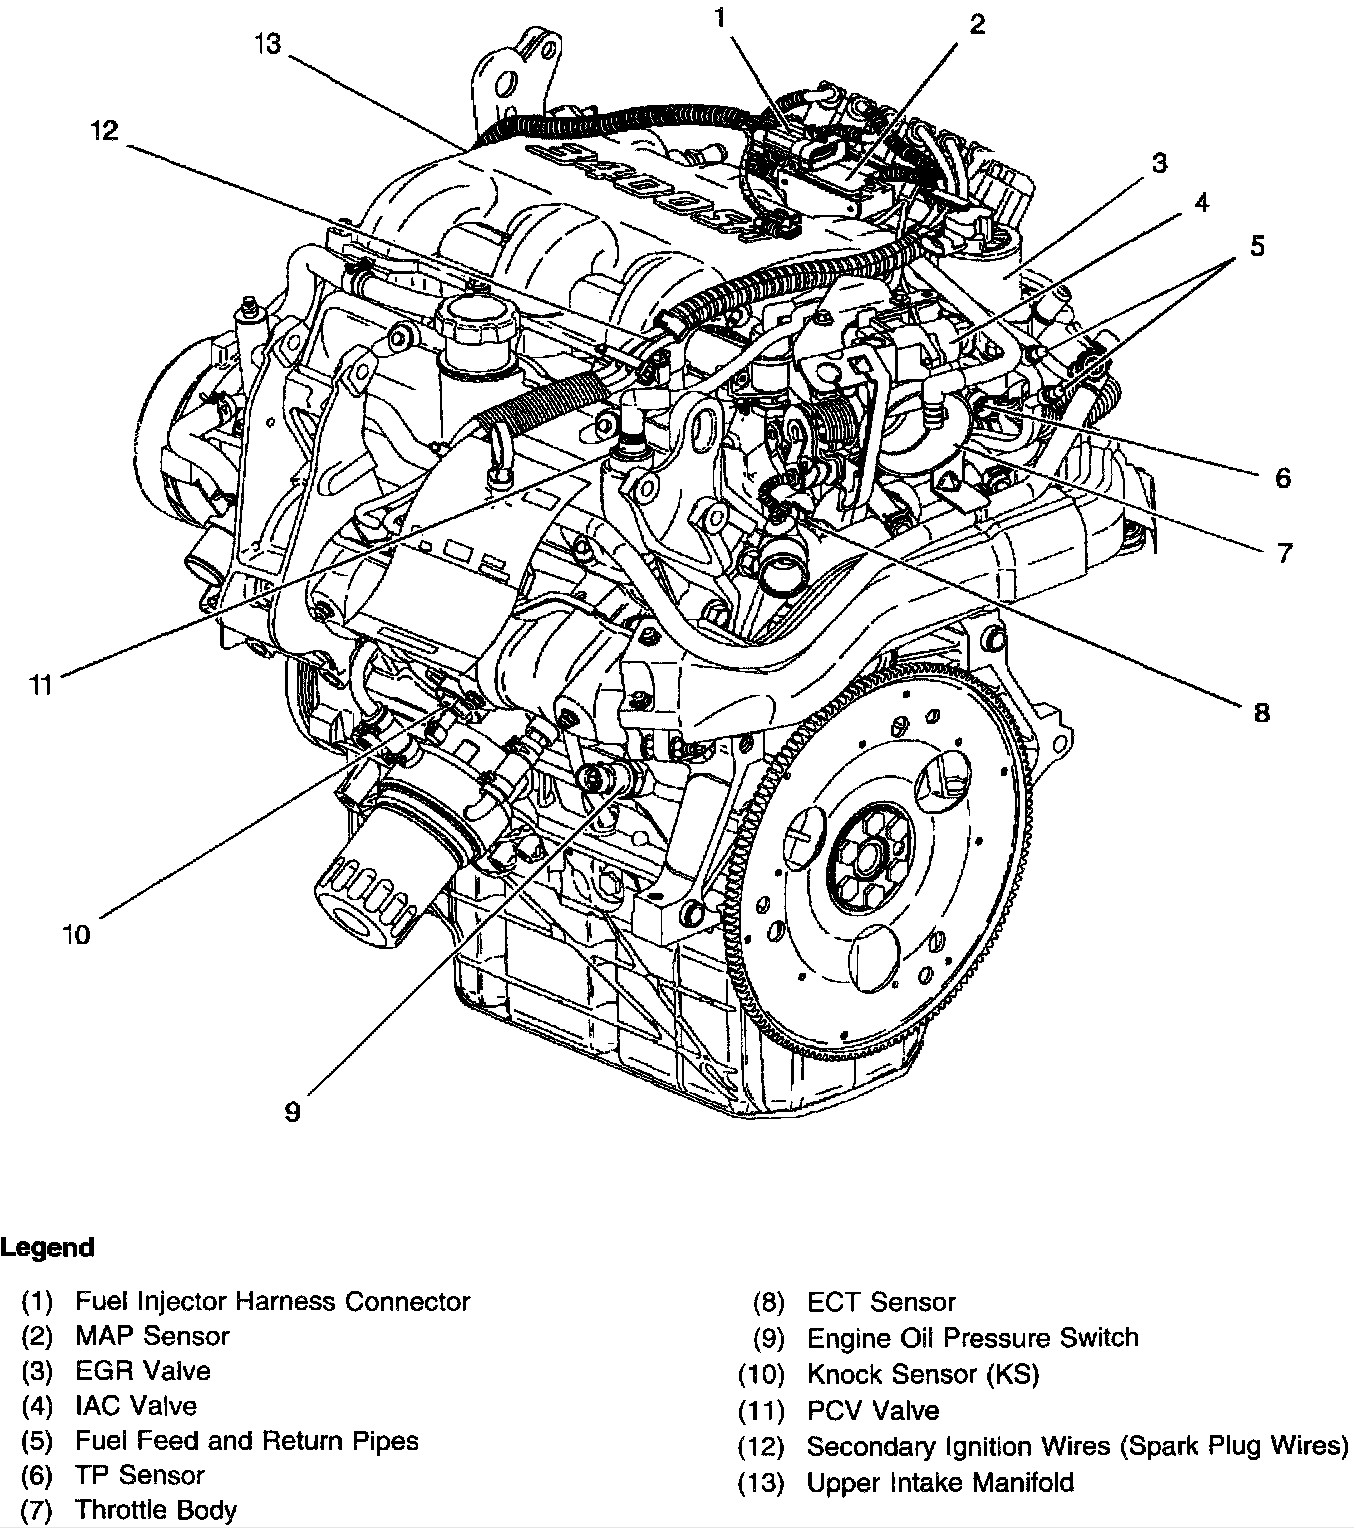 Ford 3 0 V6 Engine Diagram V6 Engine Diagram Wiring Info • Of Ford 3 0 V6 Engine Diagram